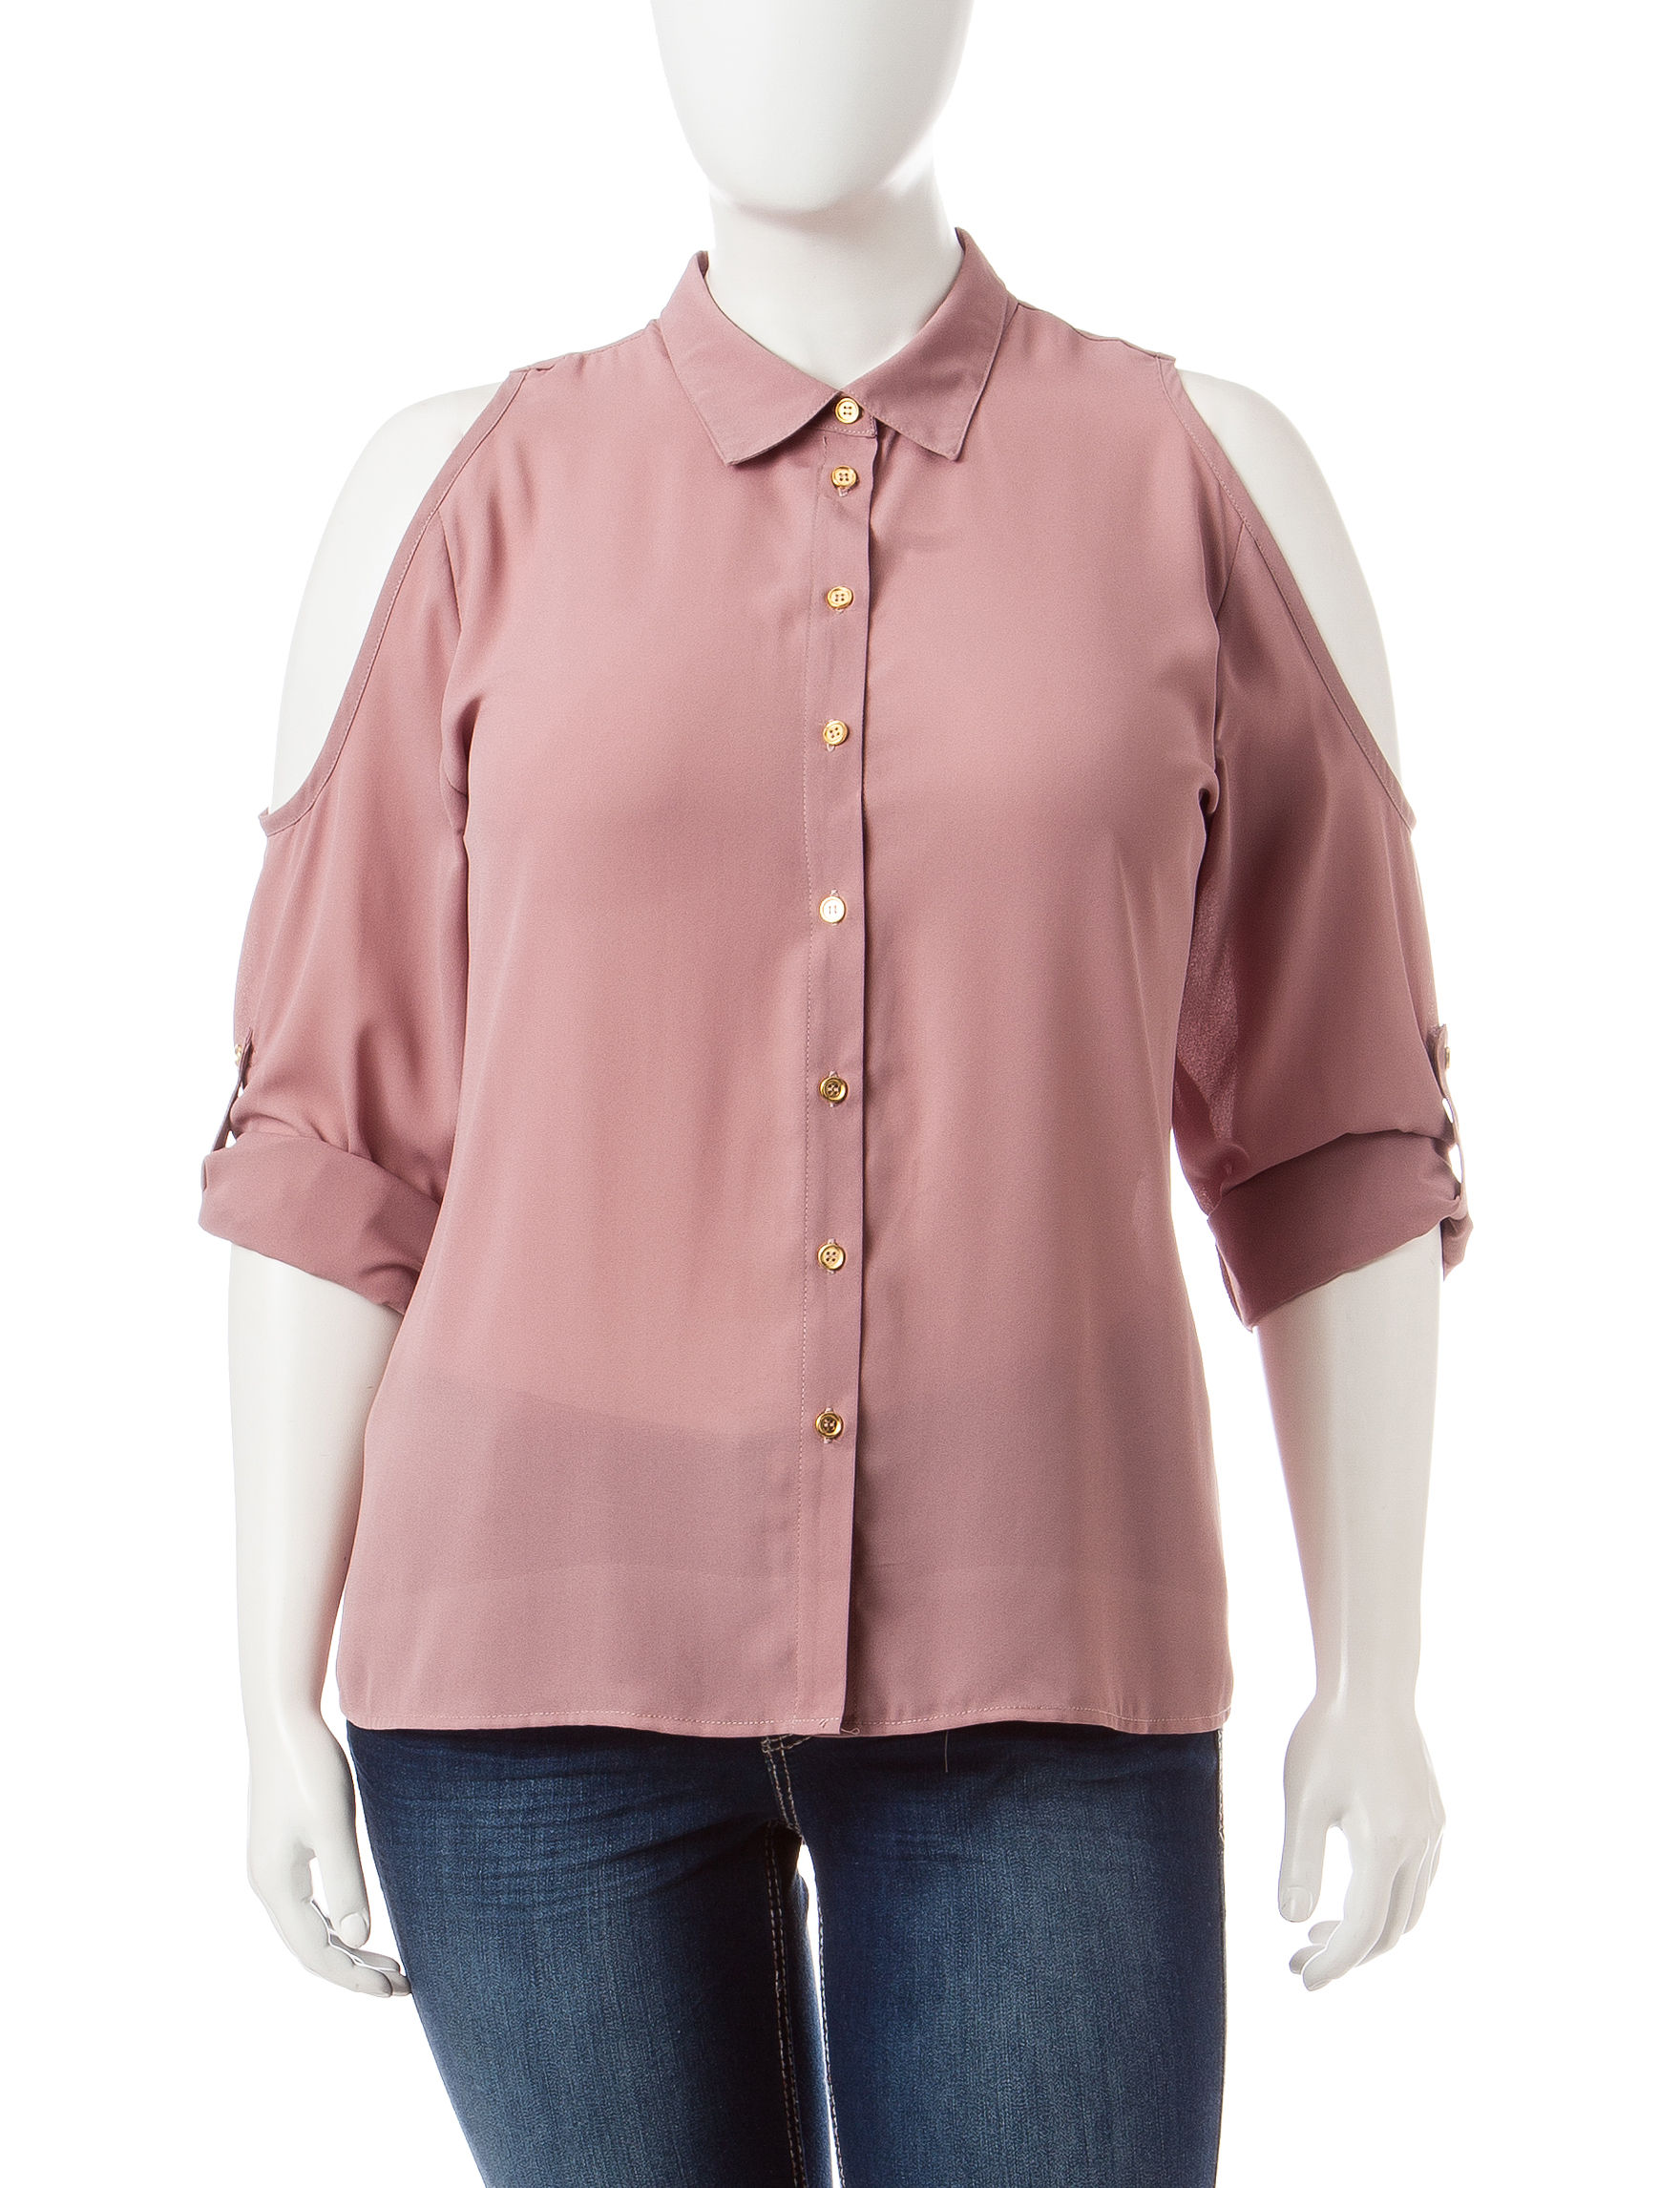 Justify Dark Pink Shirts & Blouses